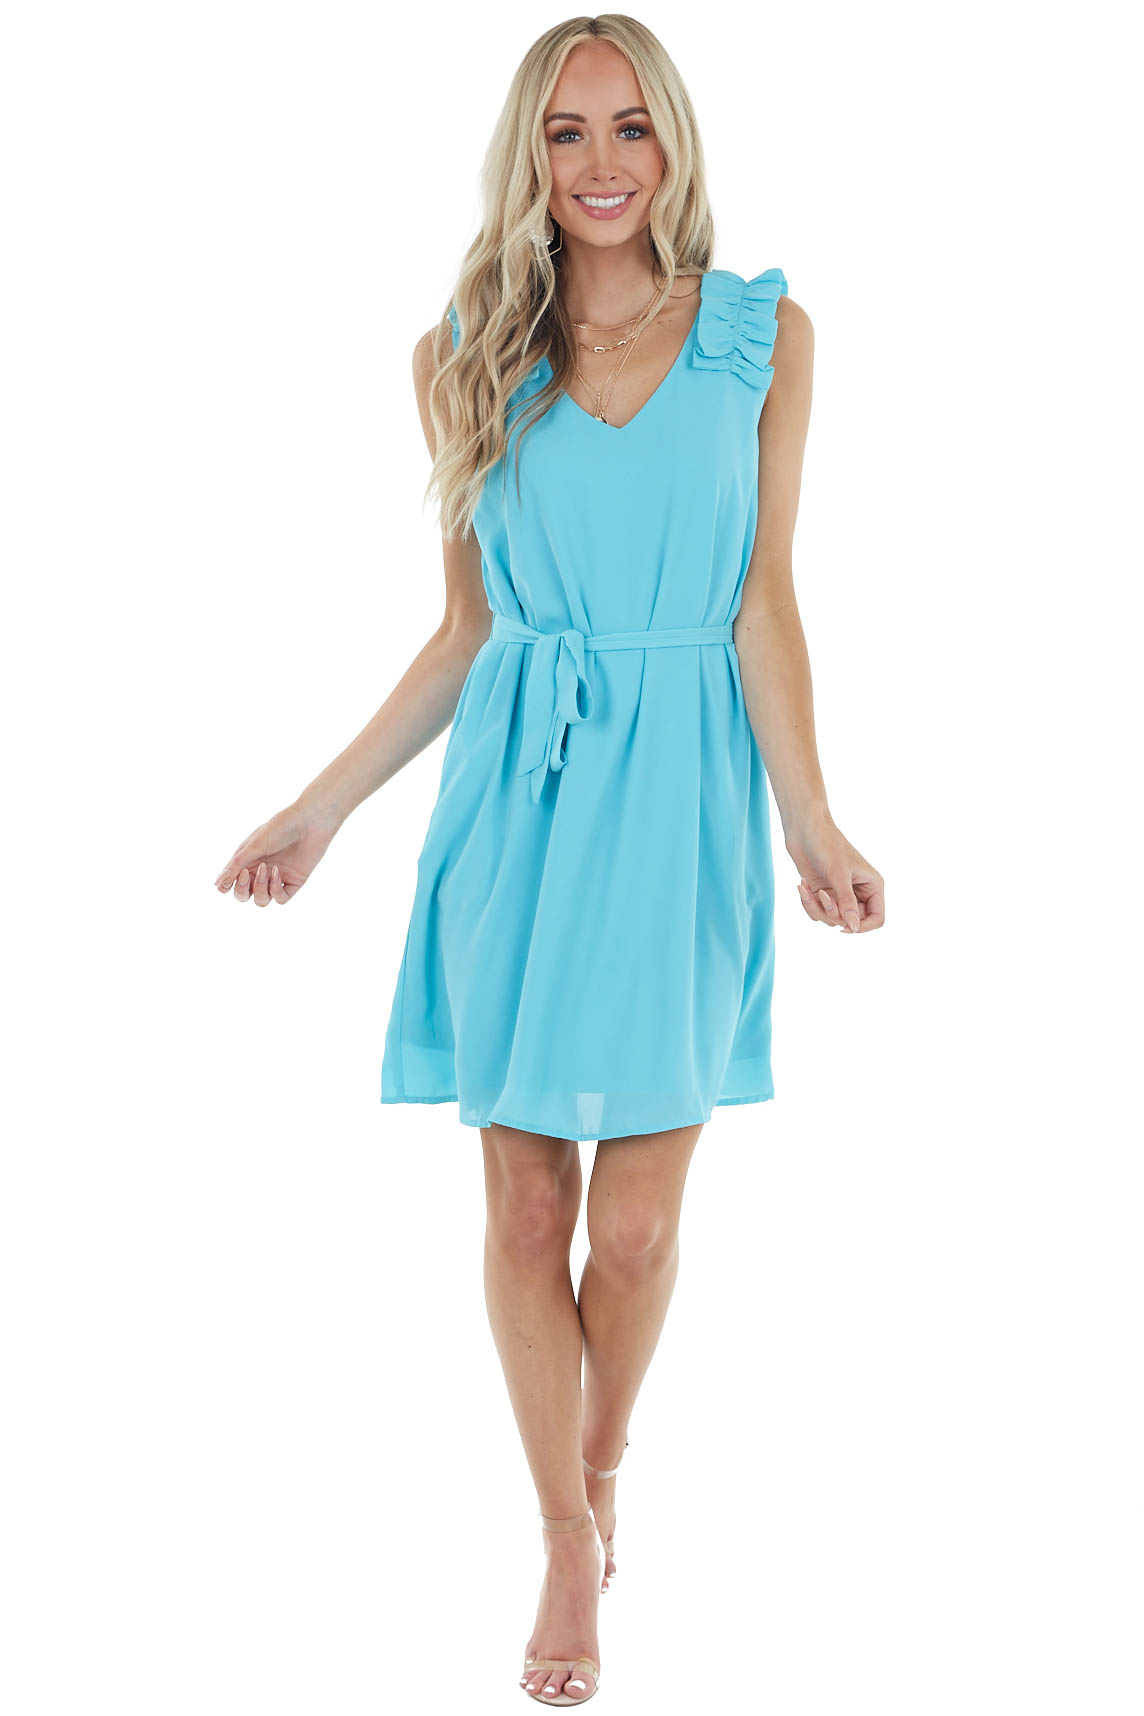 Turquoise Woven Short Dress with Ruffle Straps and Tie